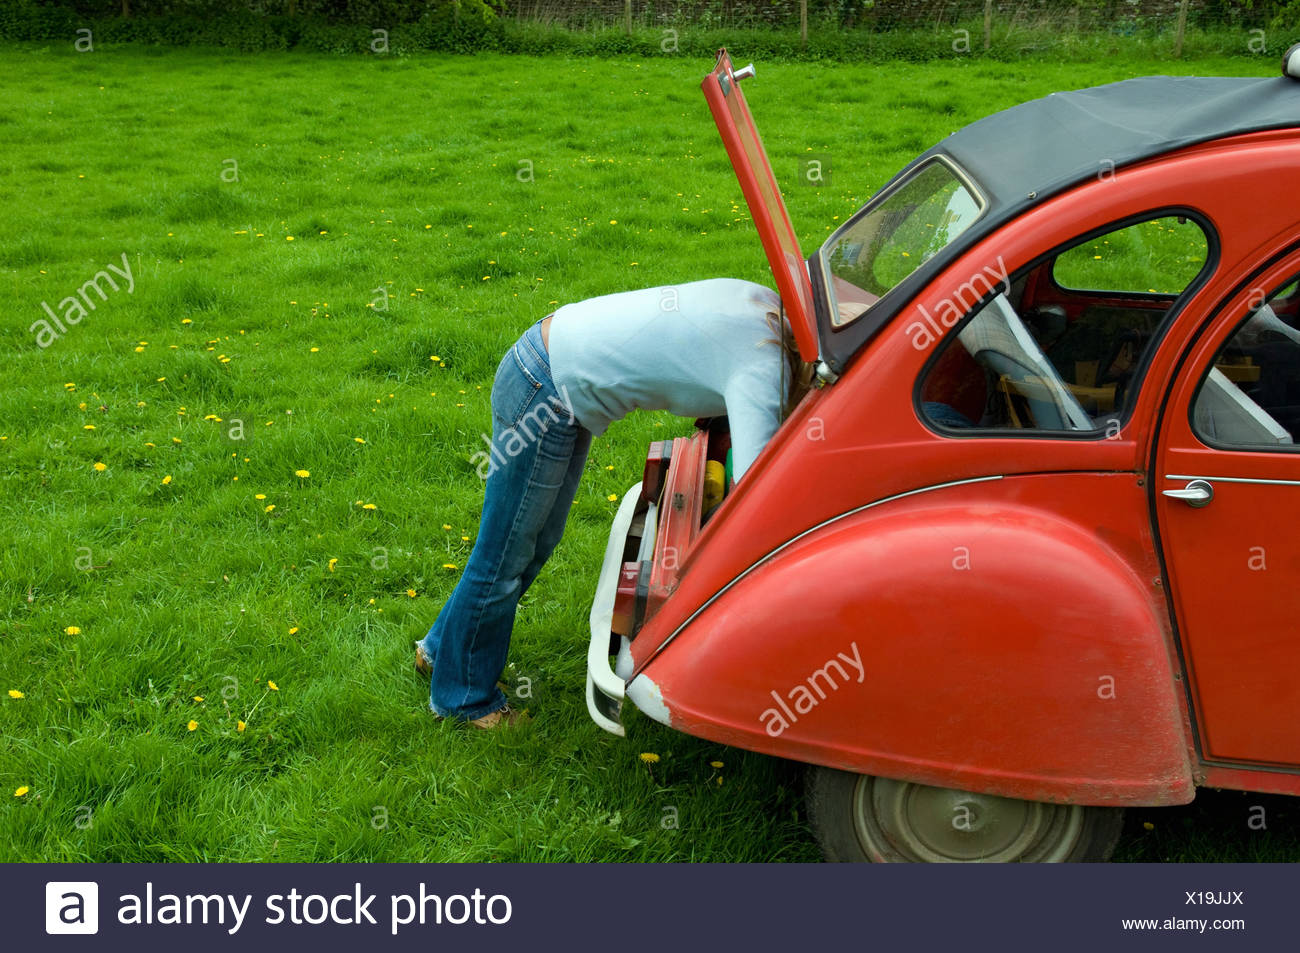 A  person leaning in to the boot at the rear of the car. Stock Photo